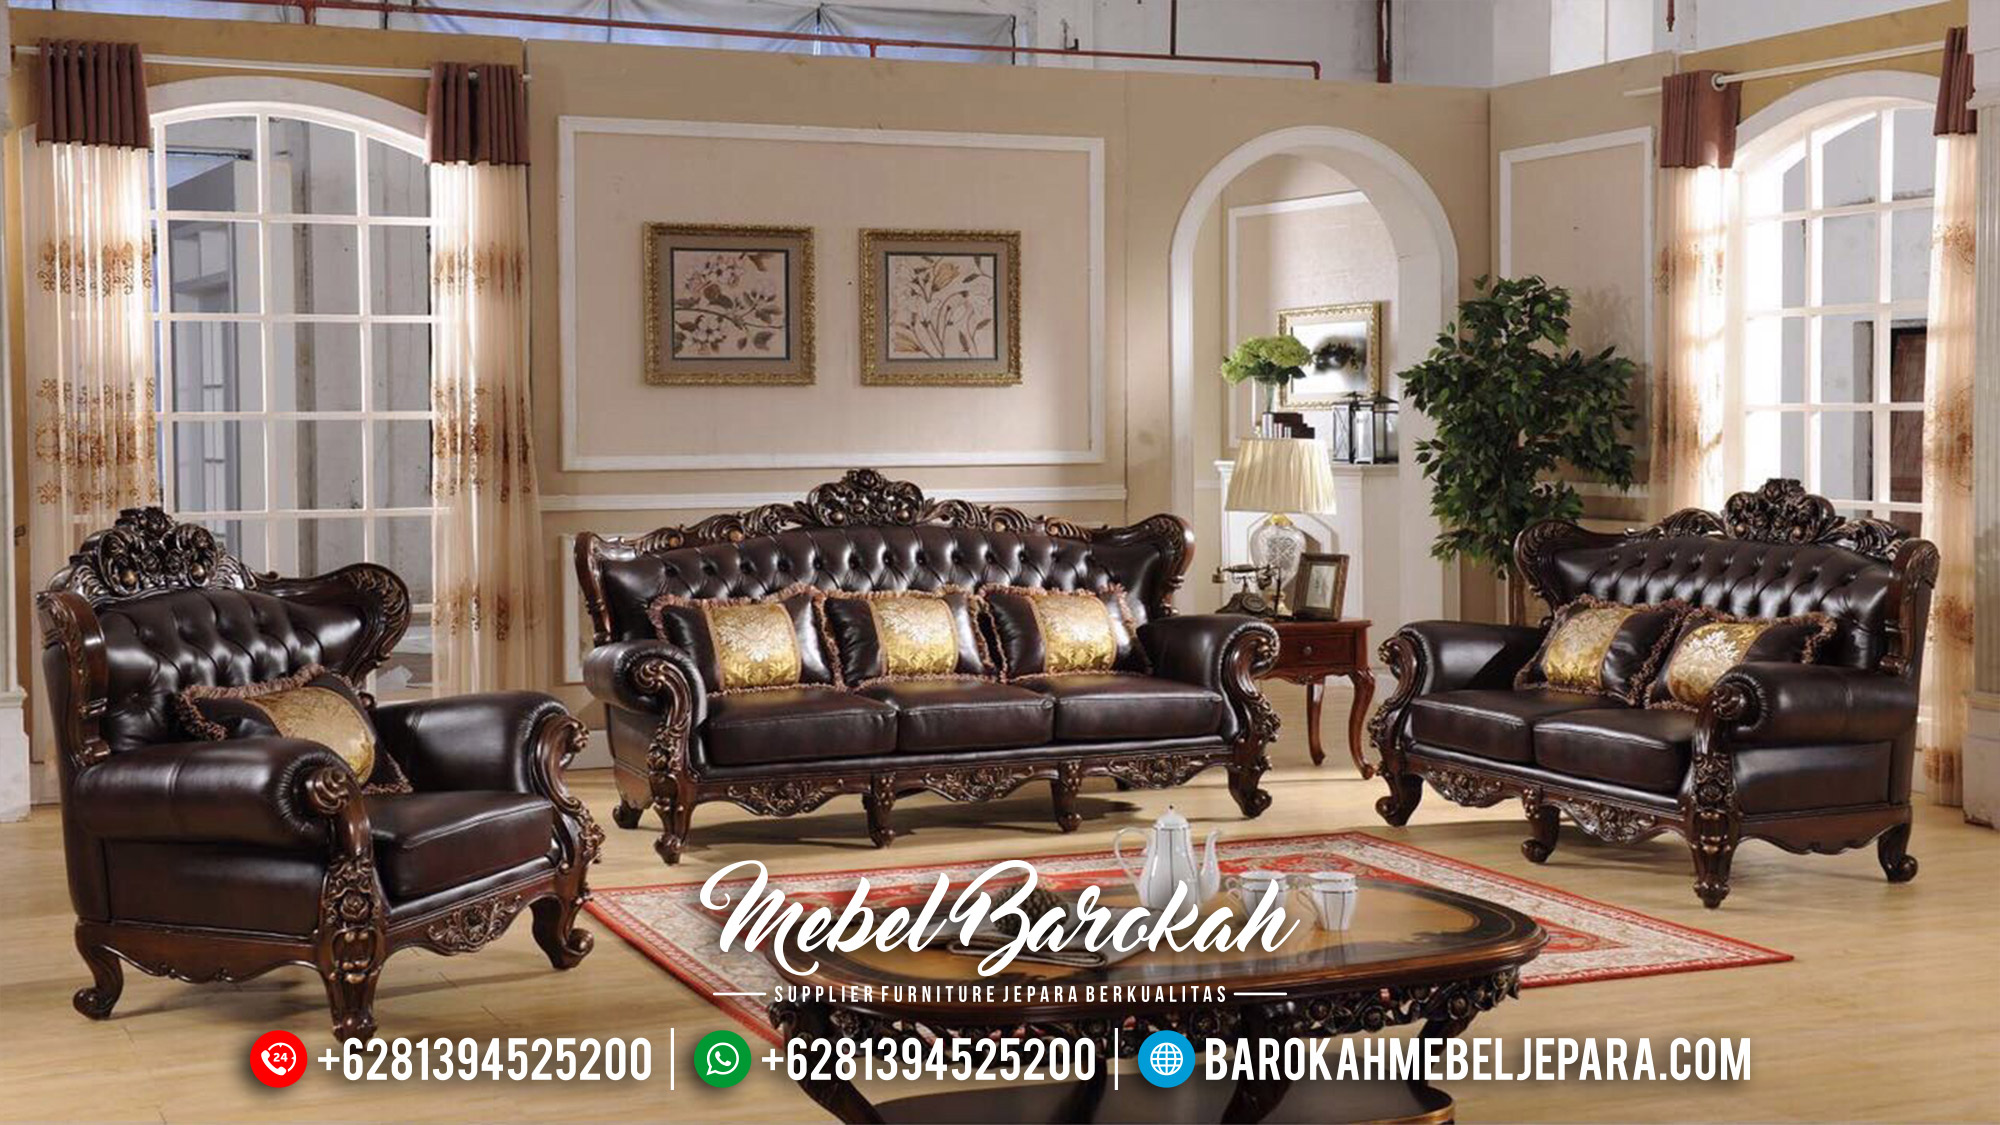 Sofa Tamu Mewah Ballerina Luxury Klasik New Design 2020 Furniture Jepara MB-0527